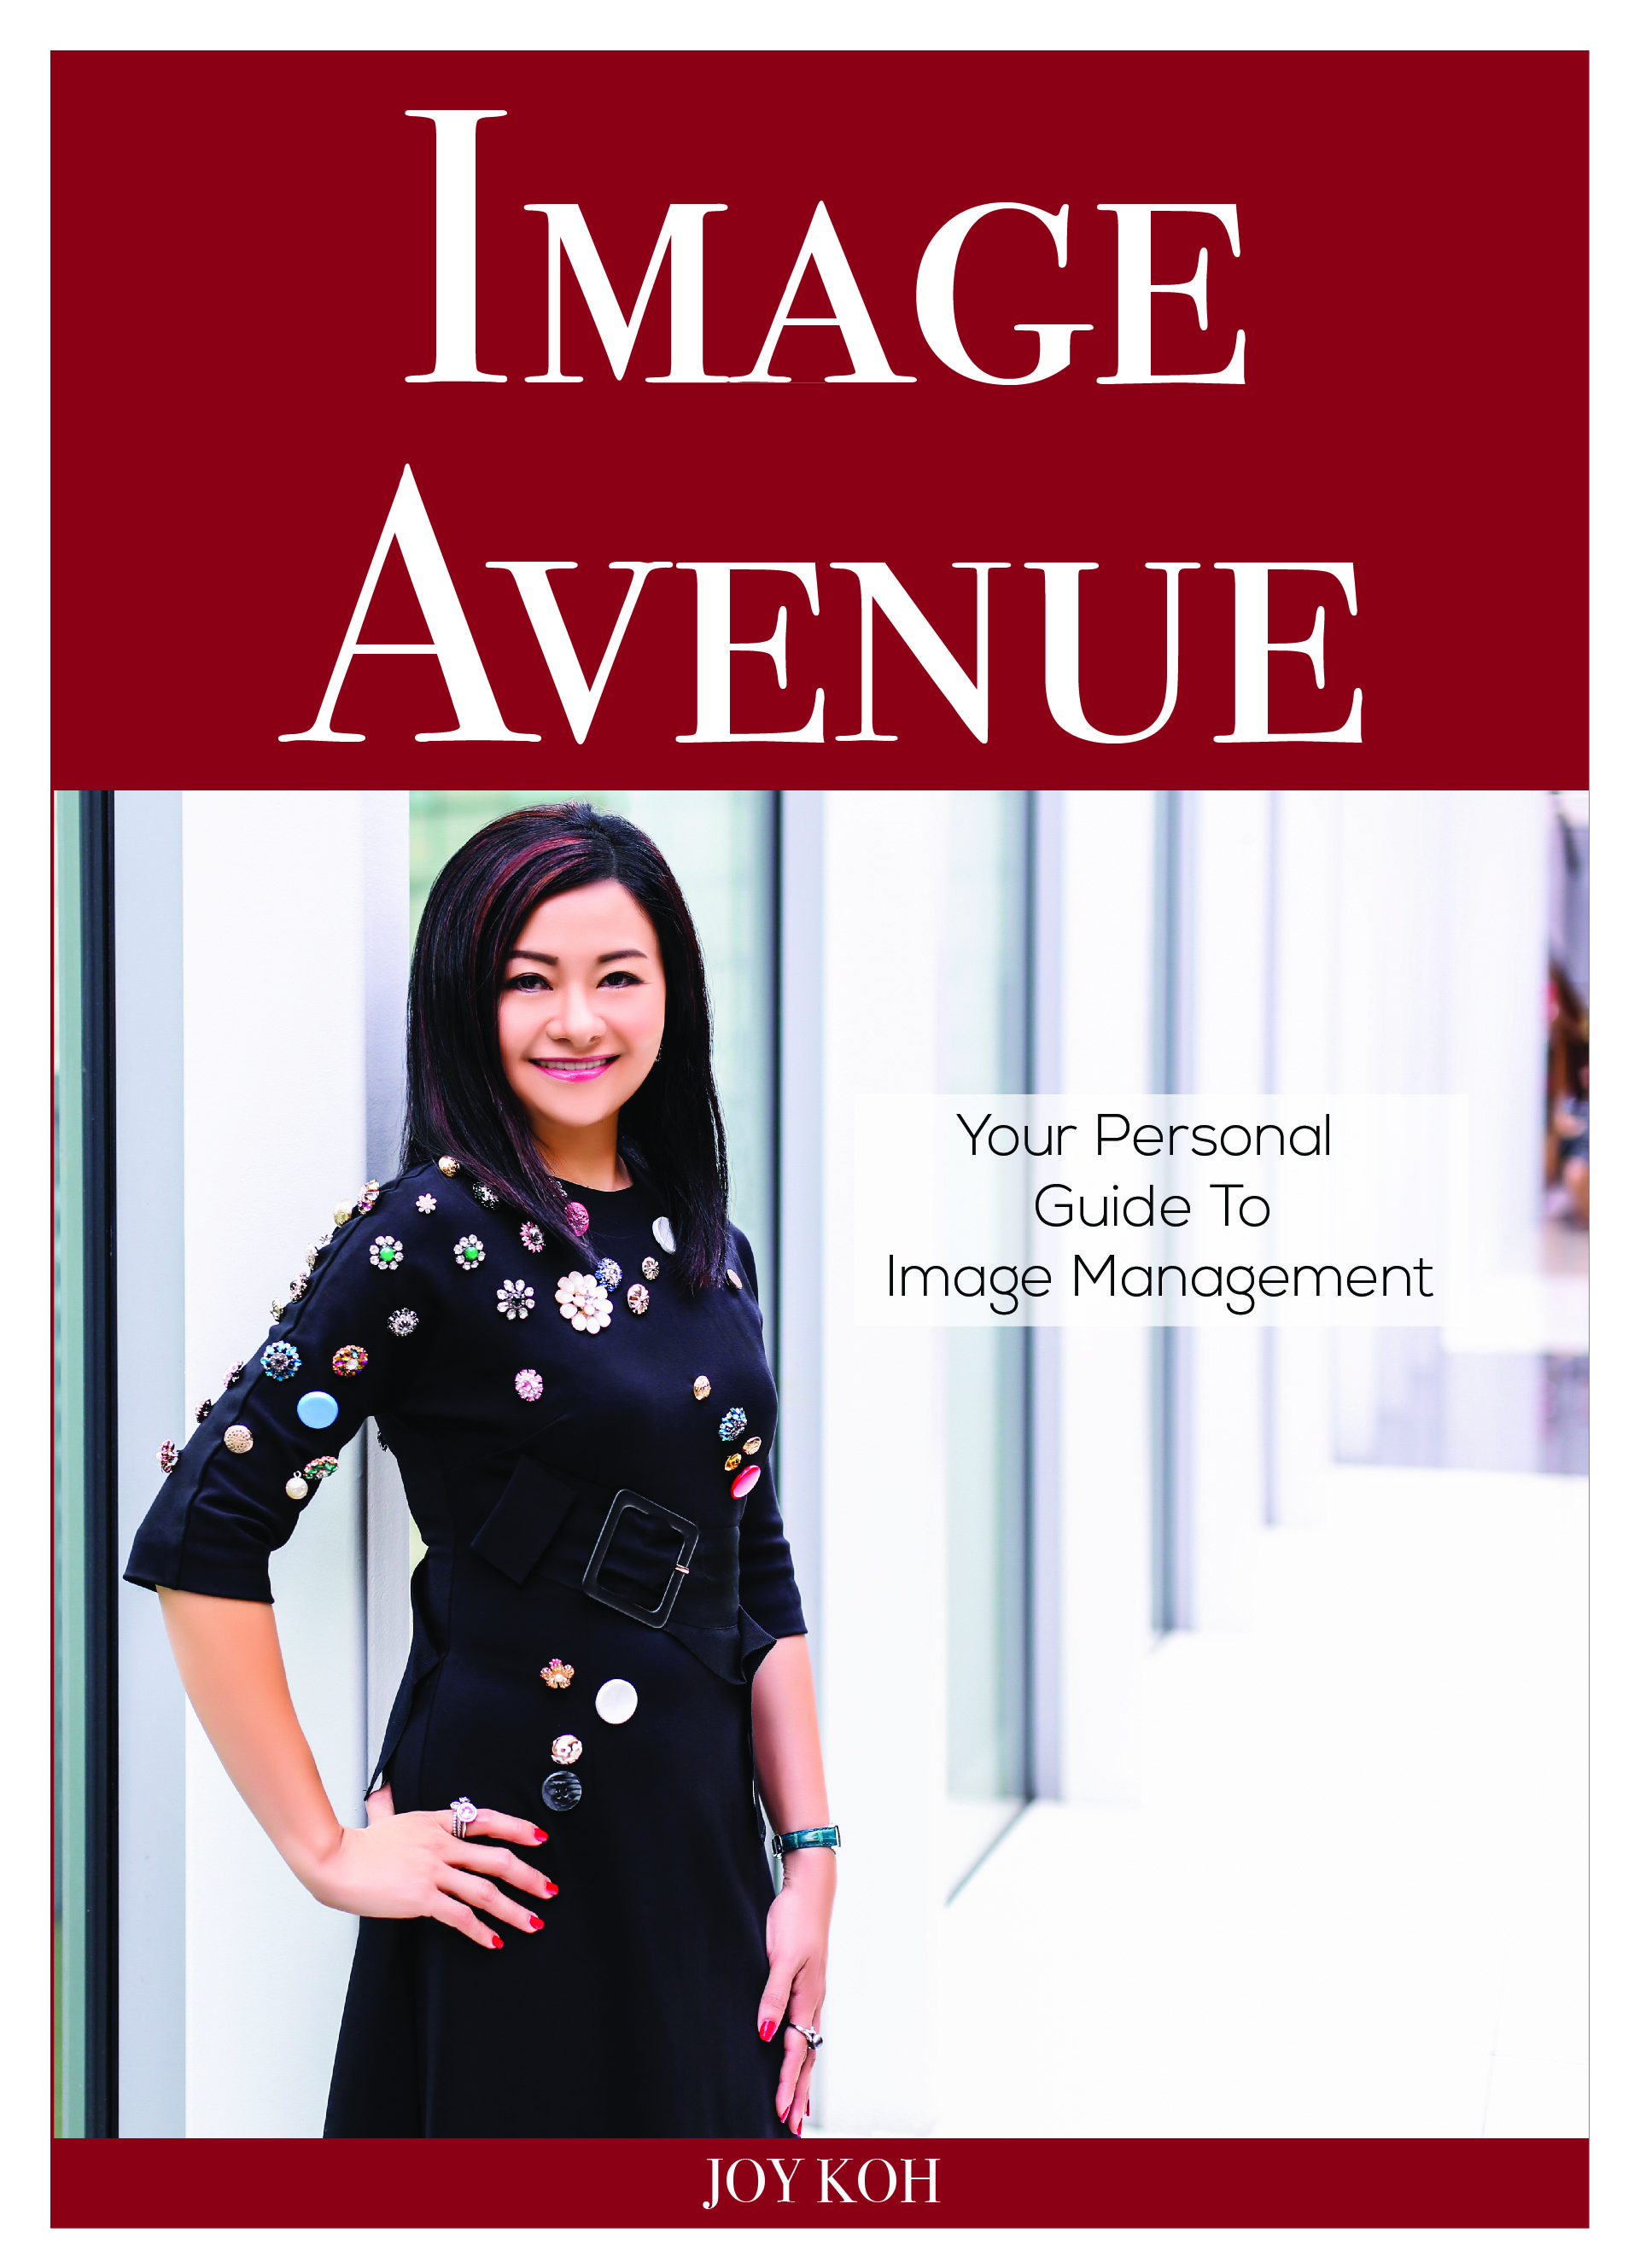 Personal Guide to Image Management by Joy Koh - Cover